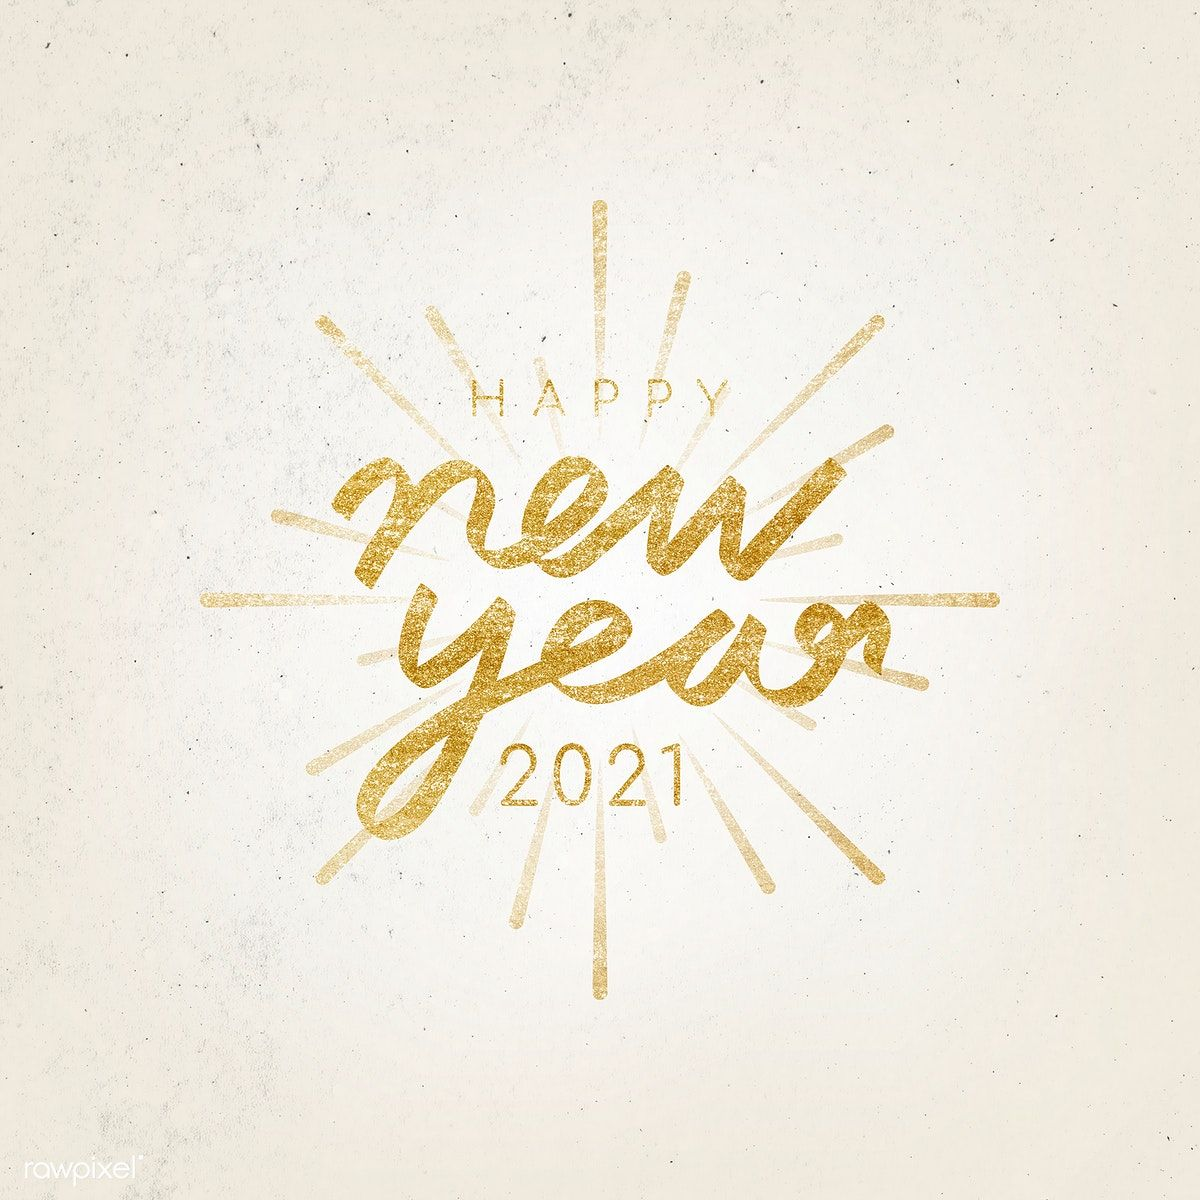 happy new year 21 typography illustration  free image